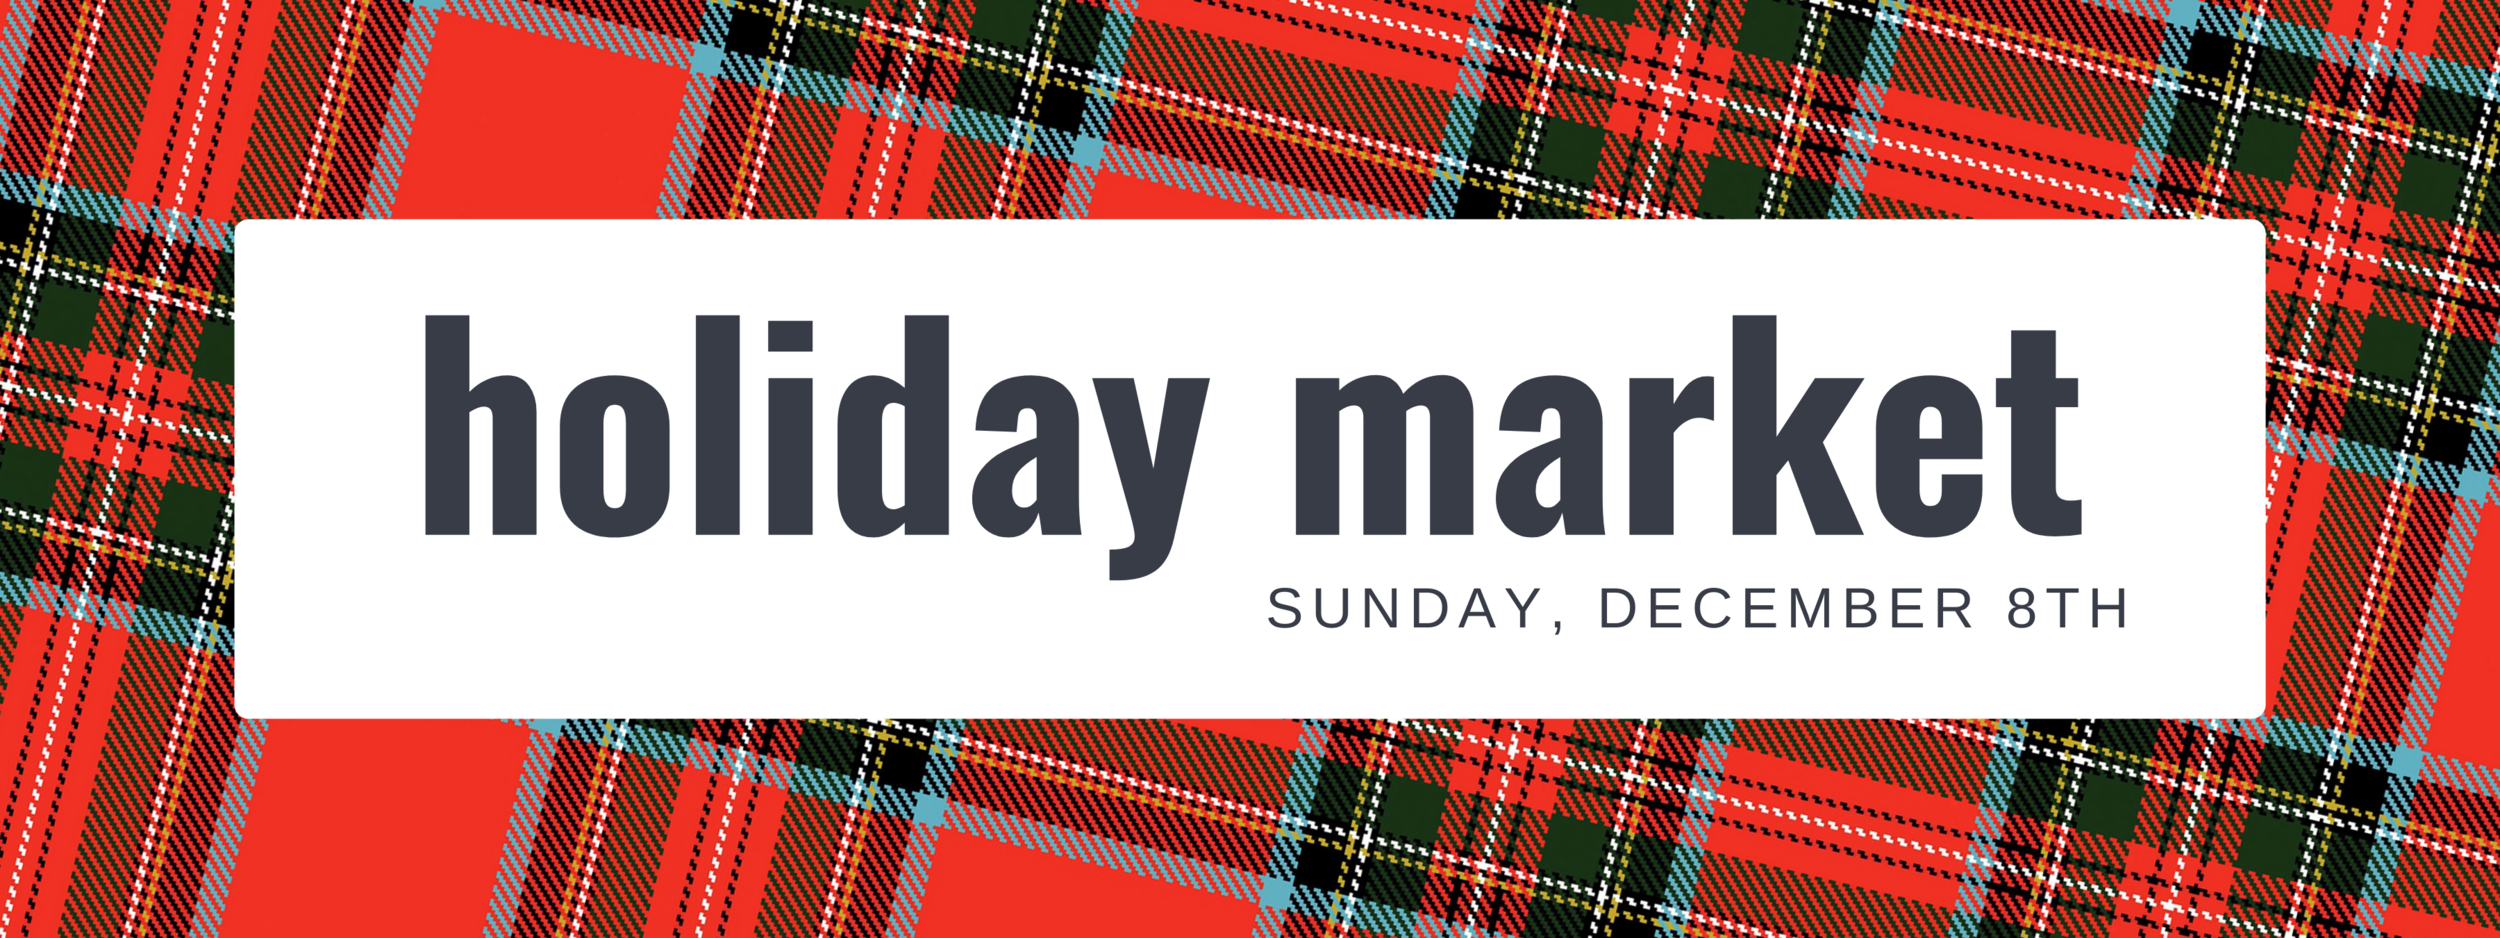 cake's holiday market - dec 8